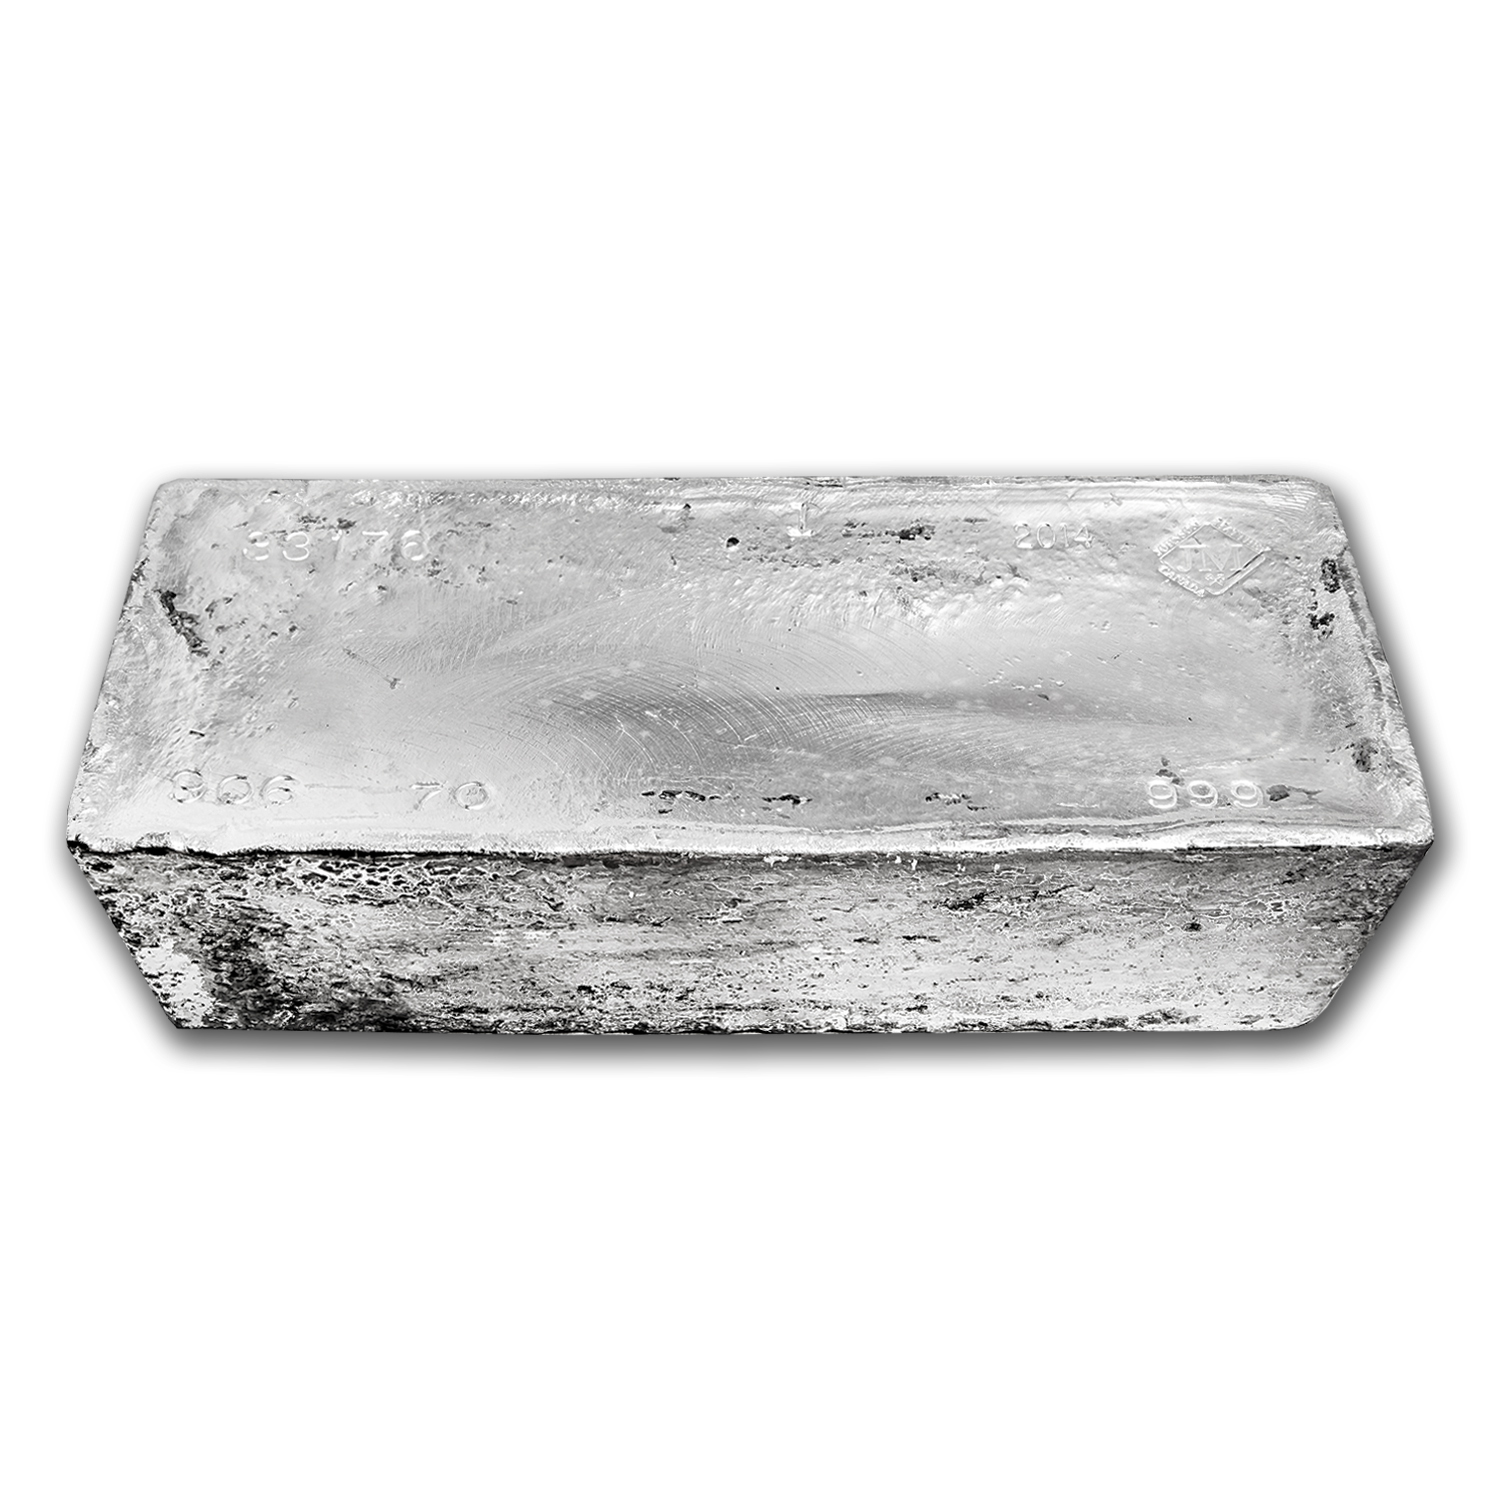 1015.60 oz Silver Bar - Johnson Matthey